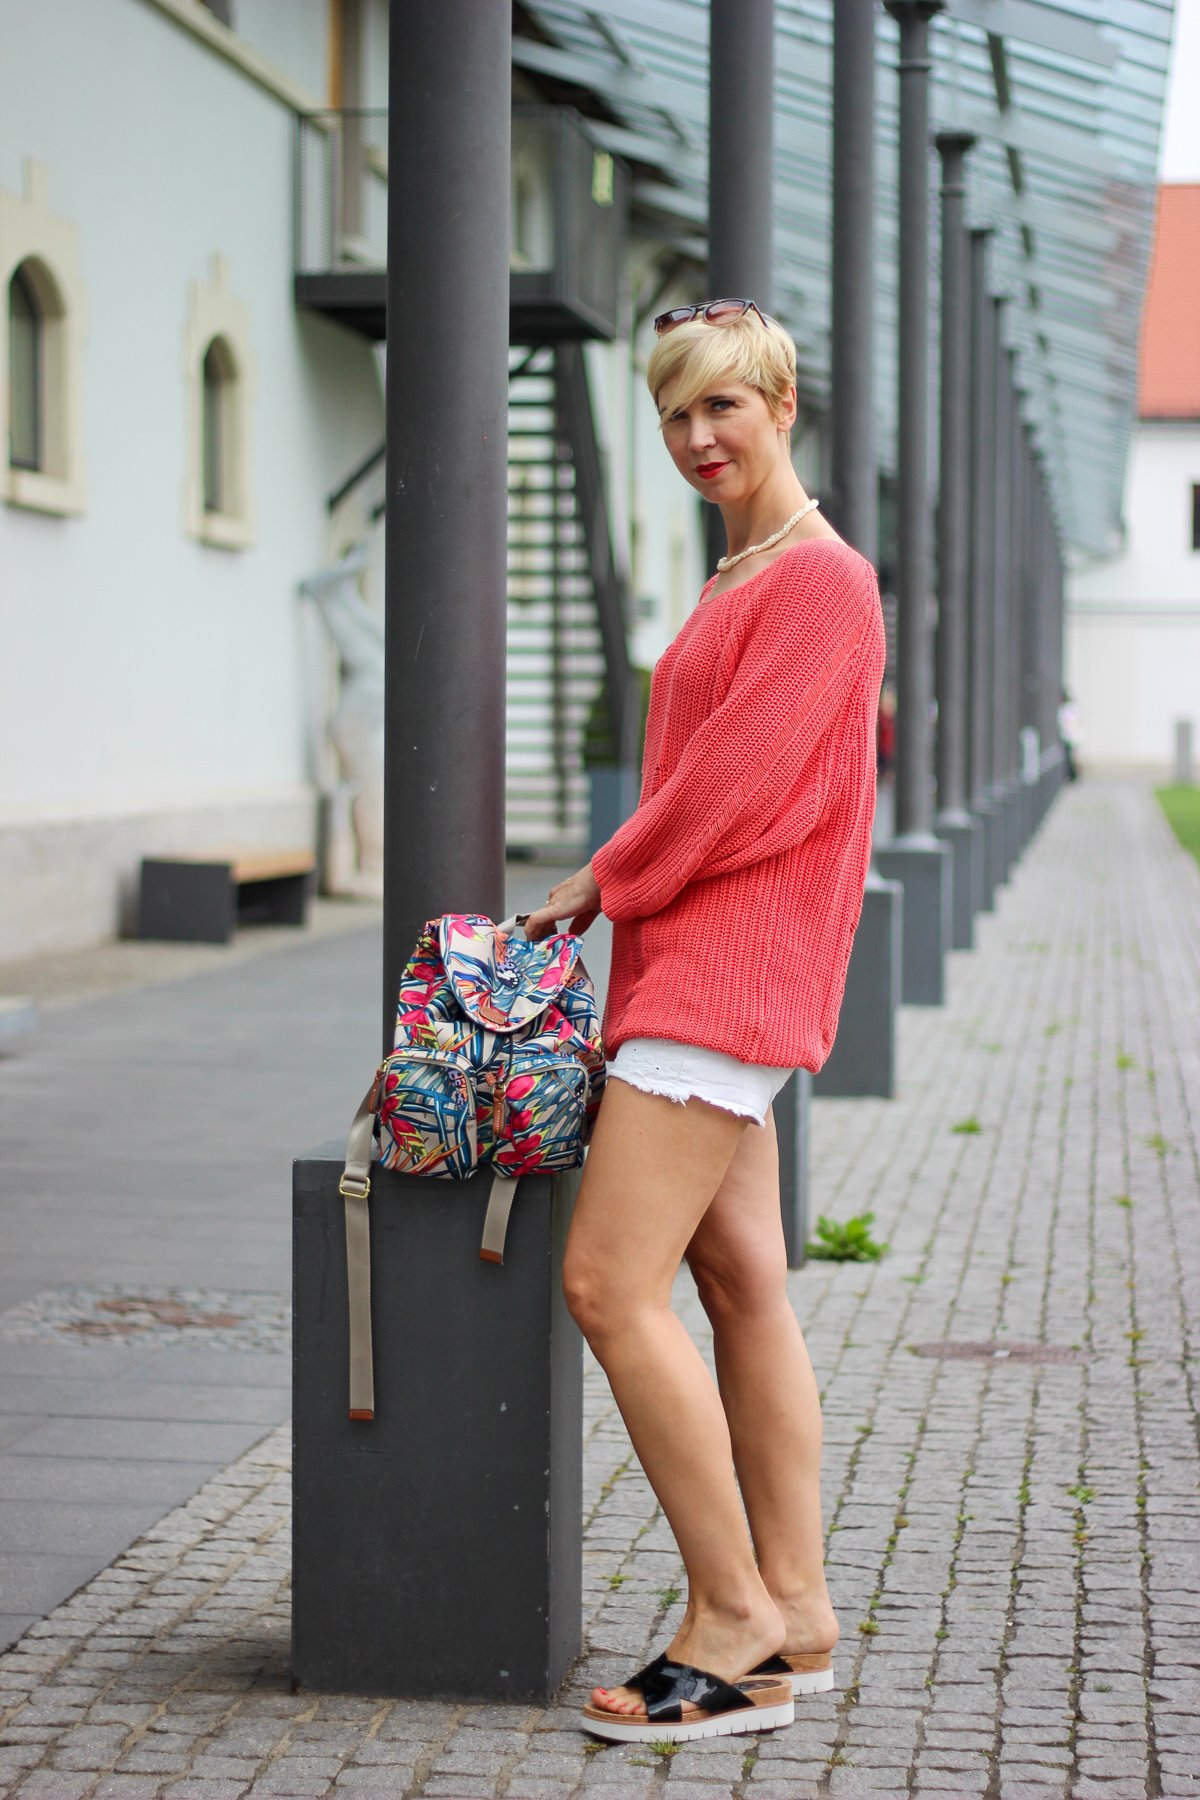 conny doll lifestyle: Shorts, destroyed Strickpullover, Sommerlook, Gehören Mode und Fashion noch zu den Smalltalk-Themen?